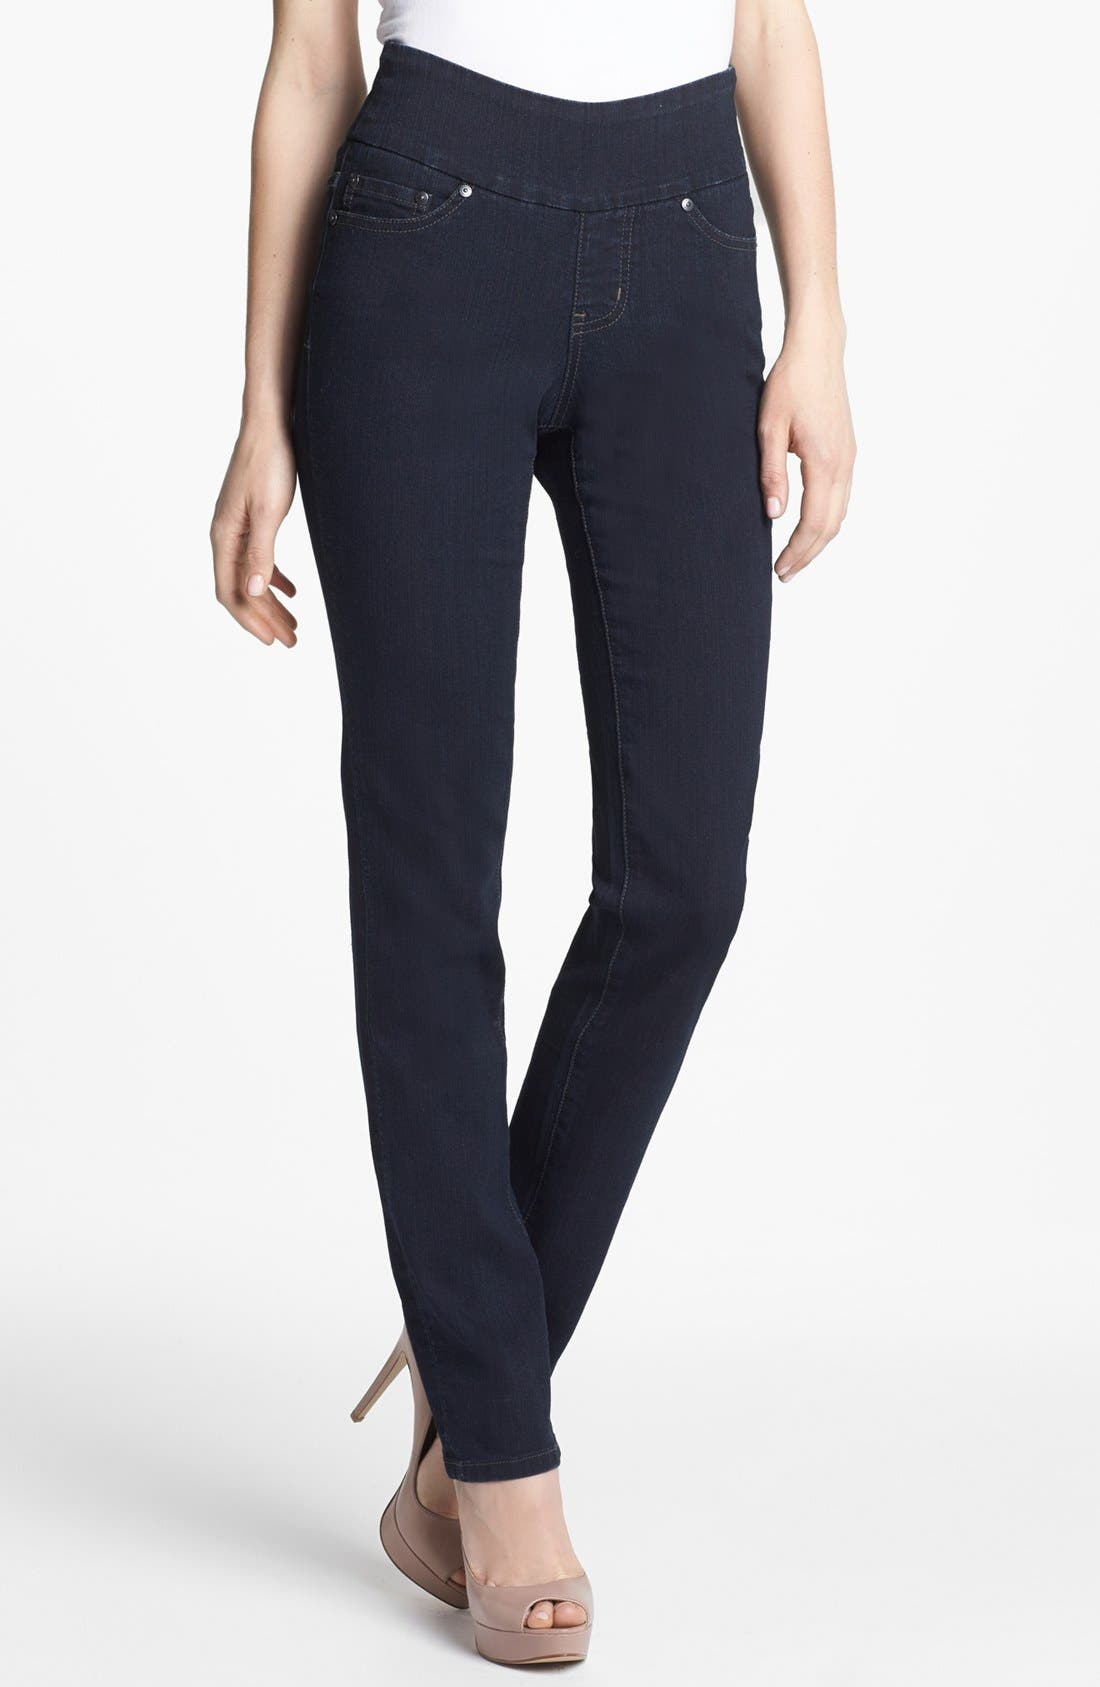 Main Image - Jag Jeans 'Peri' Pull-On Straight Leg Jeans (Petite) (After Midnight)